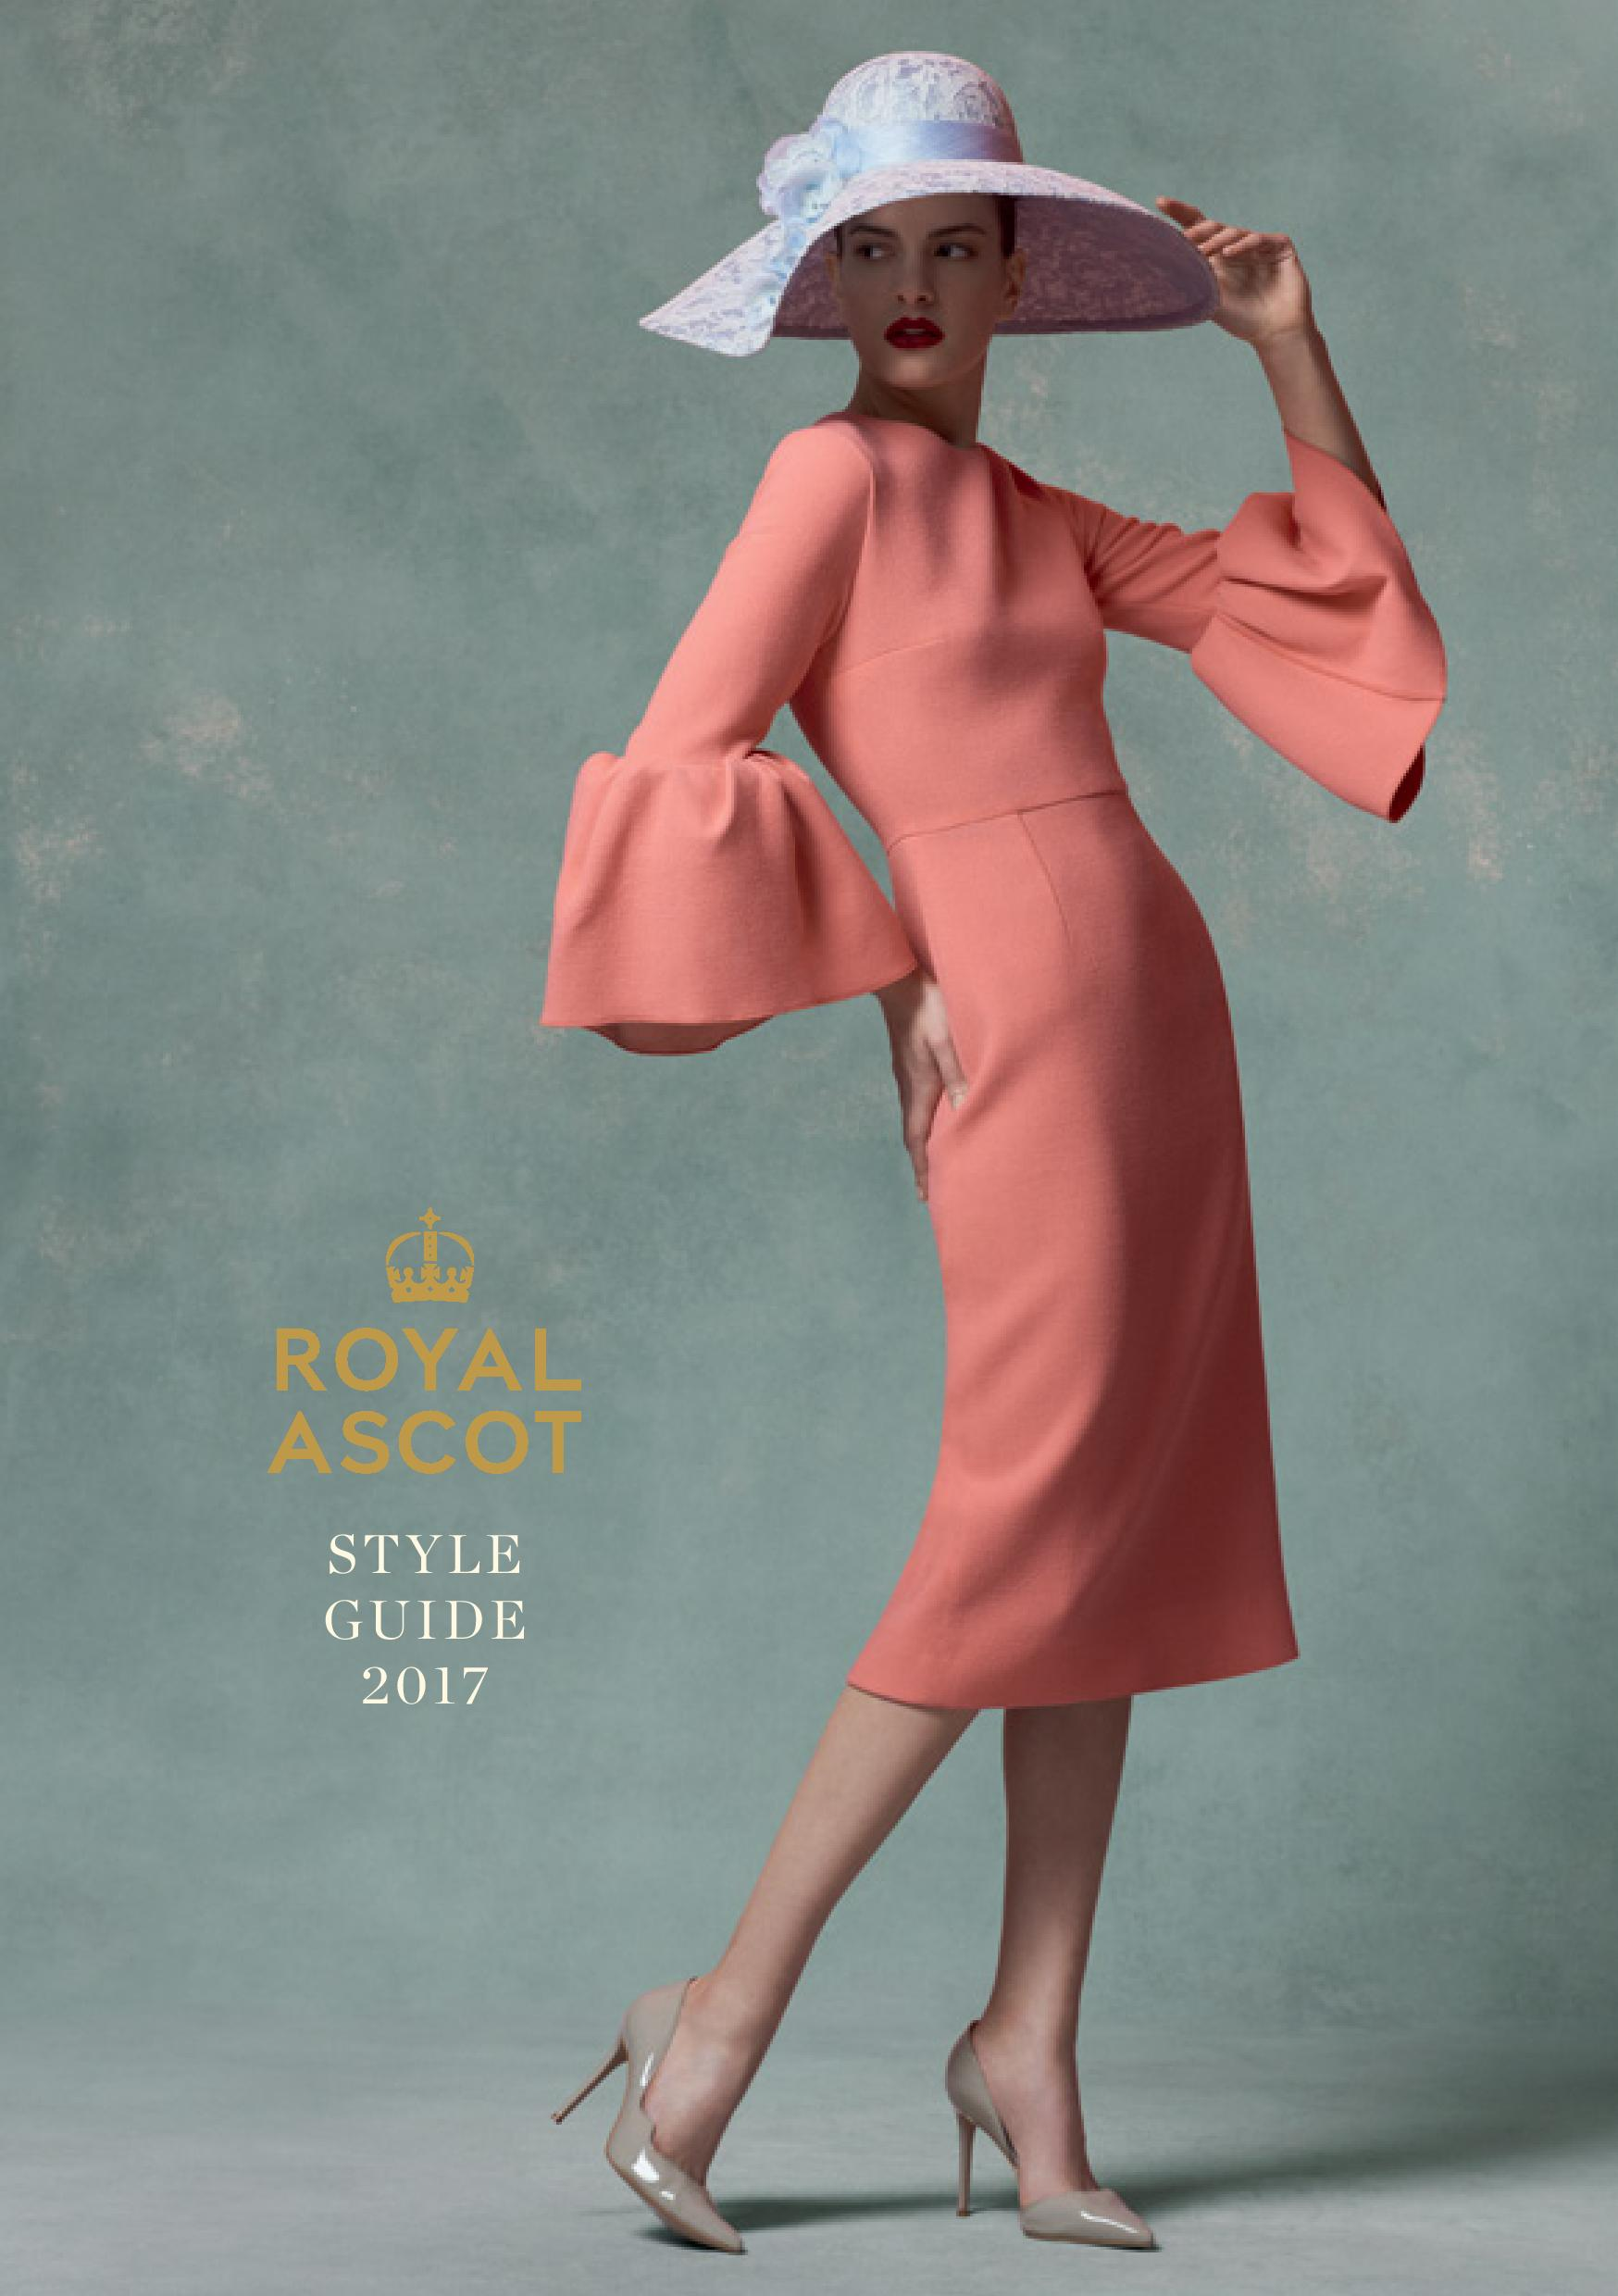 The Royal Ascot Style Guide 2017